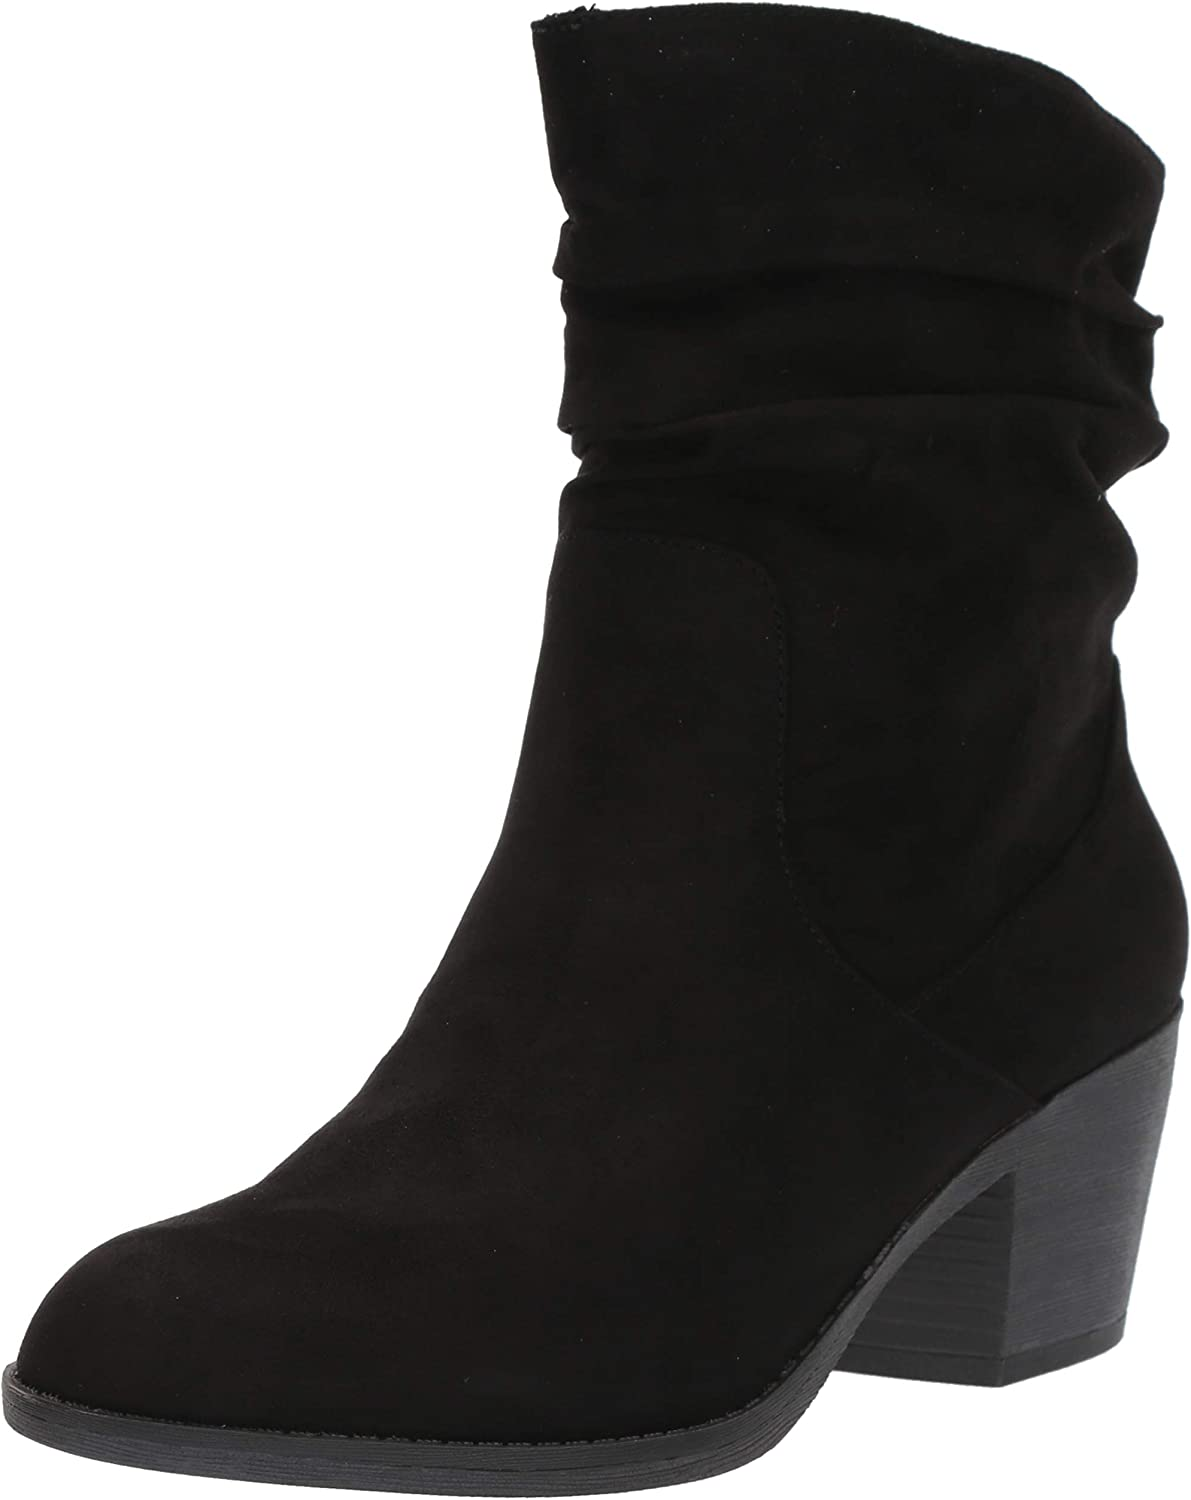 Size 3,4,5,6,7,8 Rocket Dog Womens Designer Fashion Buckle Ankle Boots £19.99